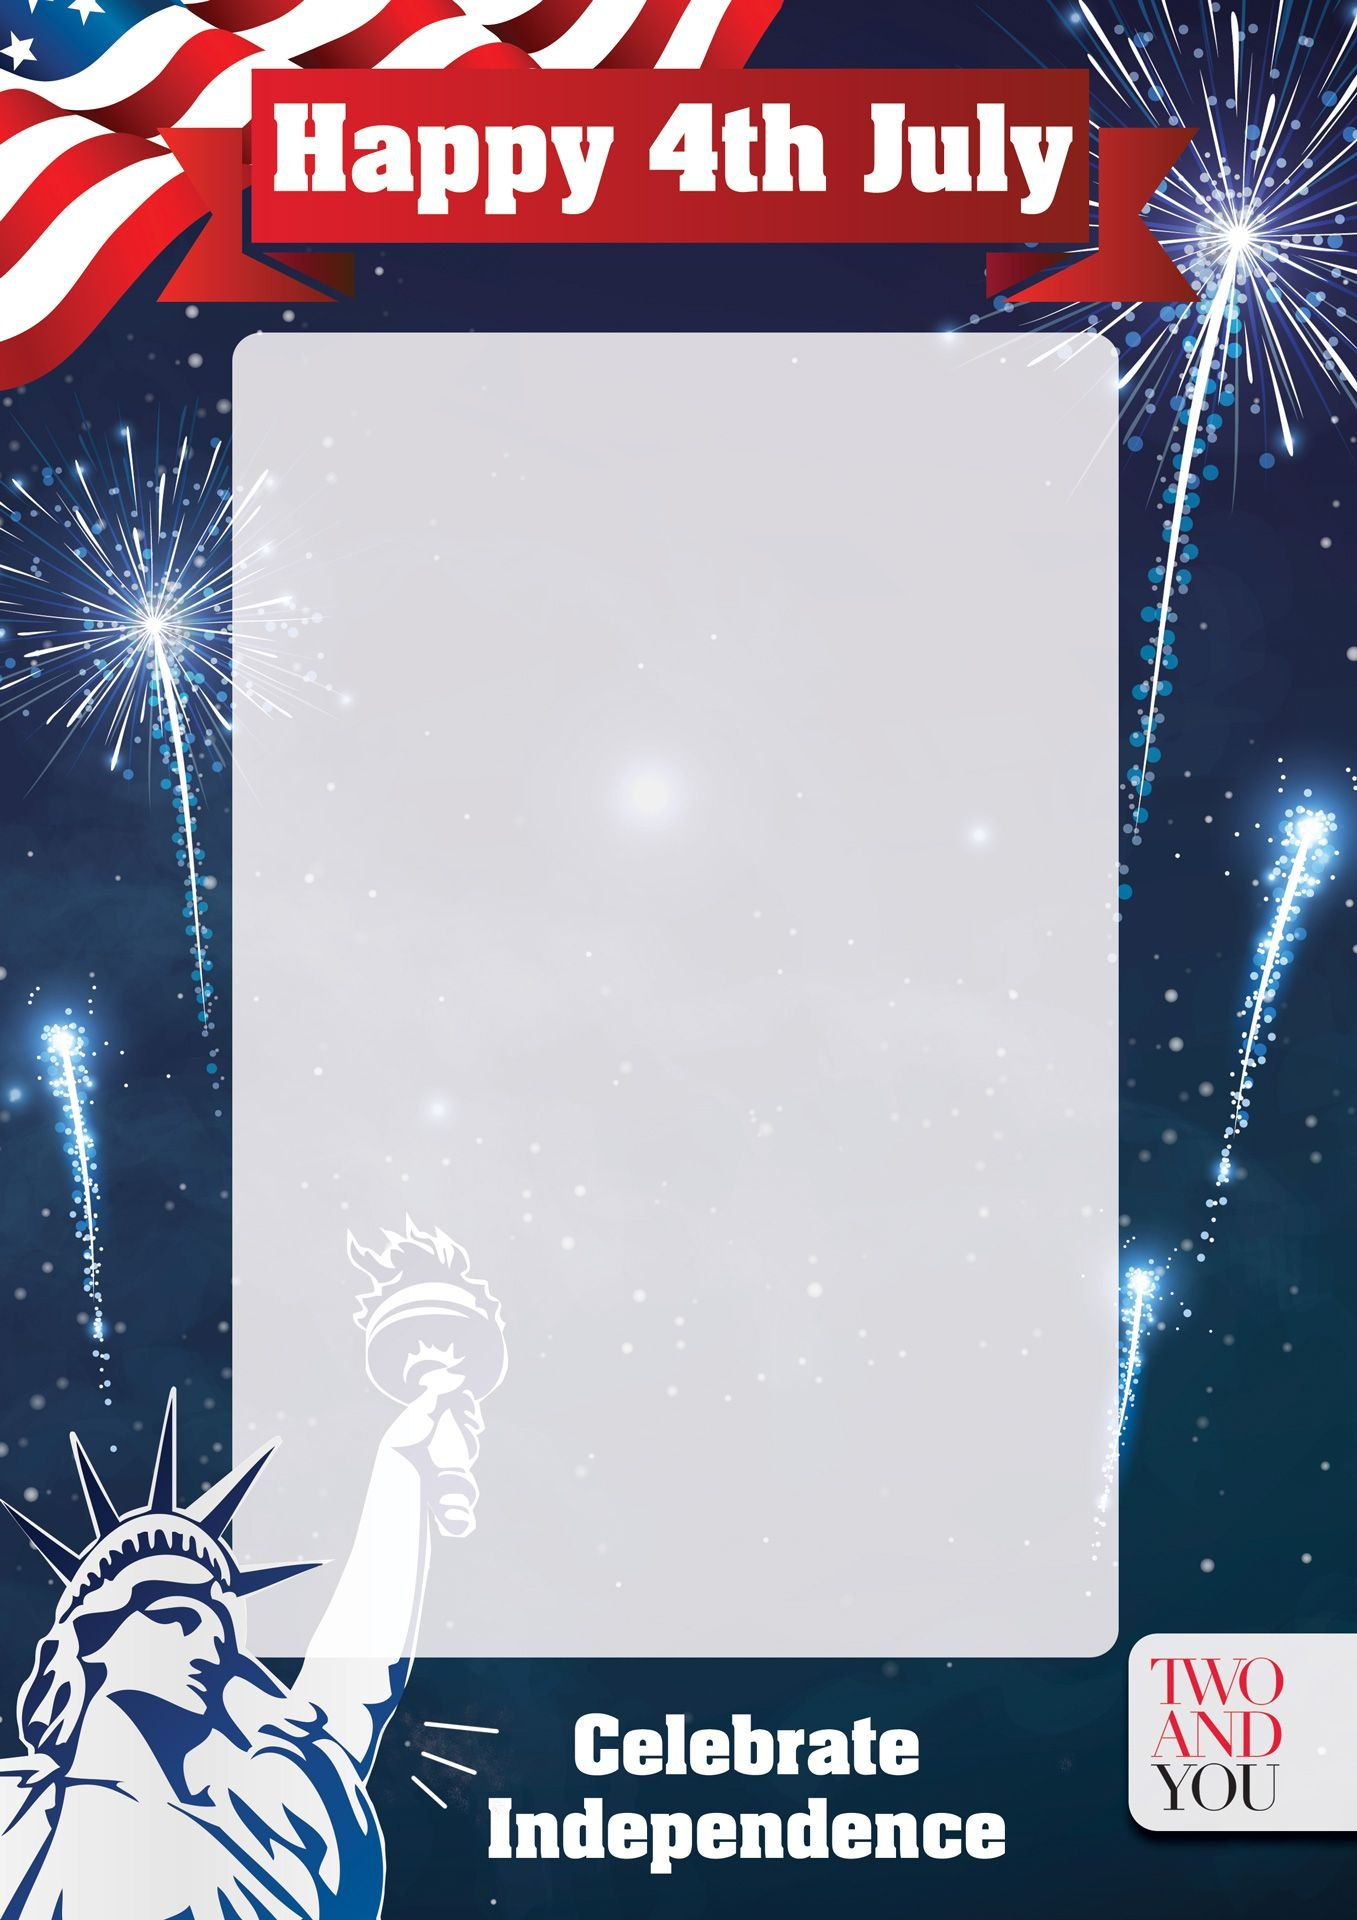 Th July  Menu Template  Ksg Menus  Menu Template Menu In 4Th Of July Menu Template